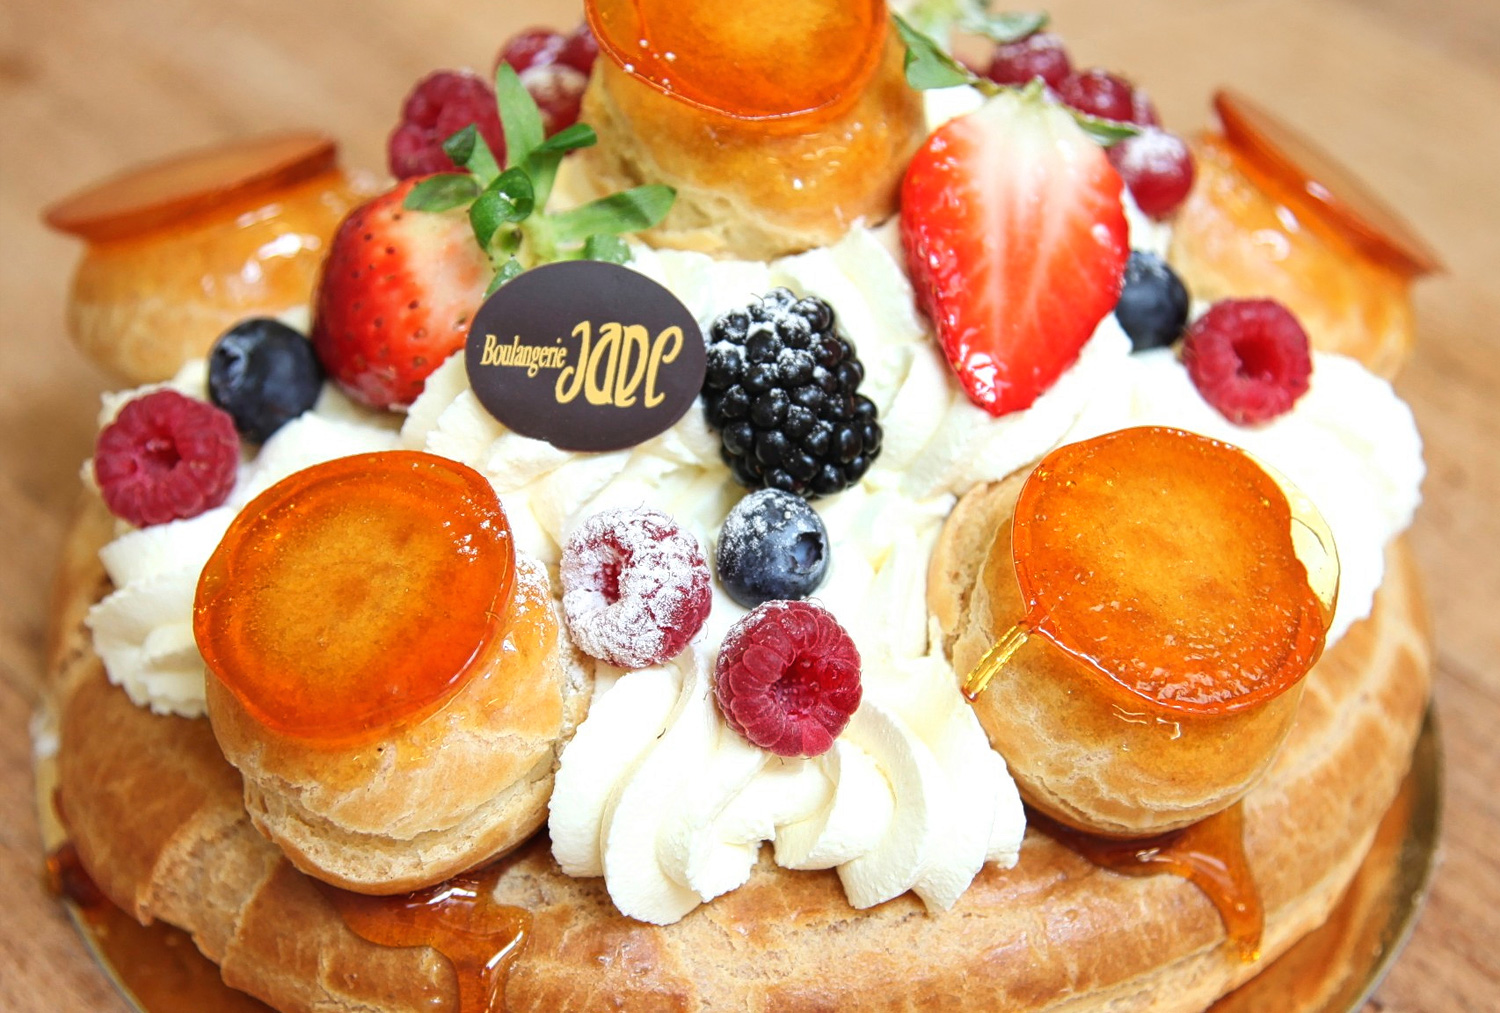 boulangerie-jade-products-cakes-tarts-pastries18.jpg